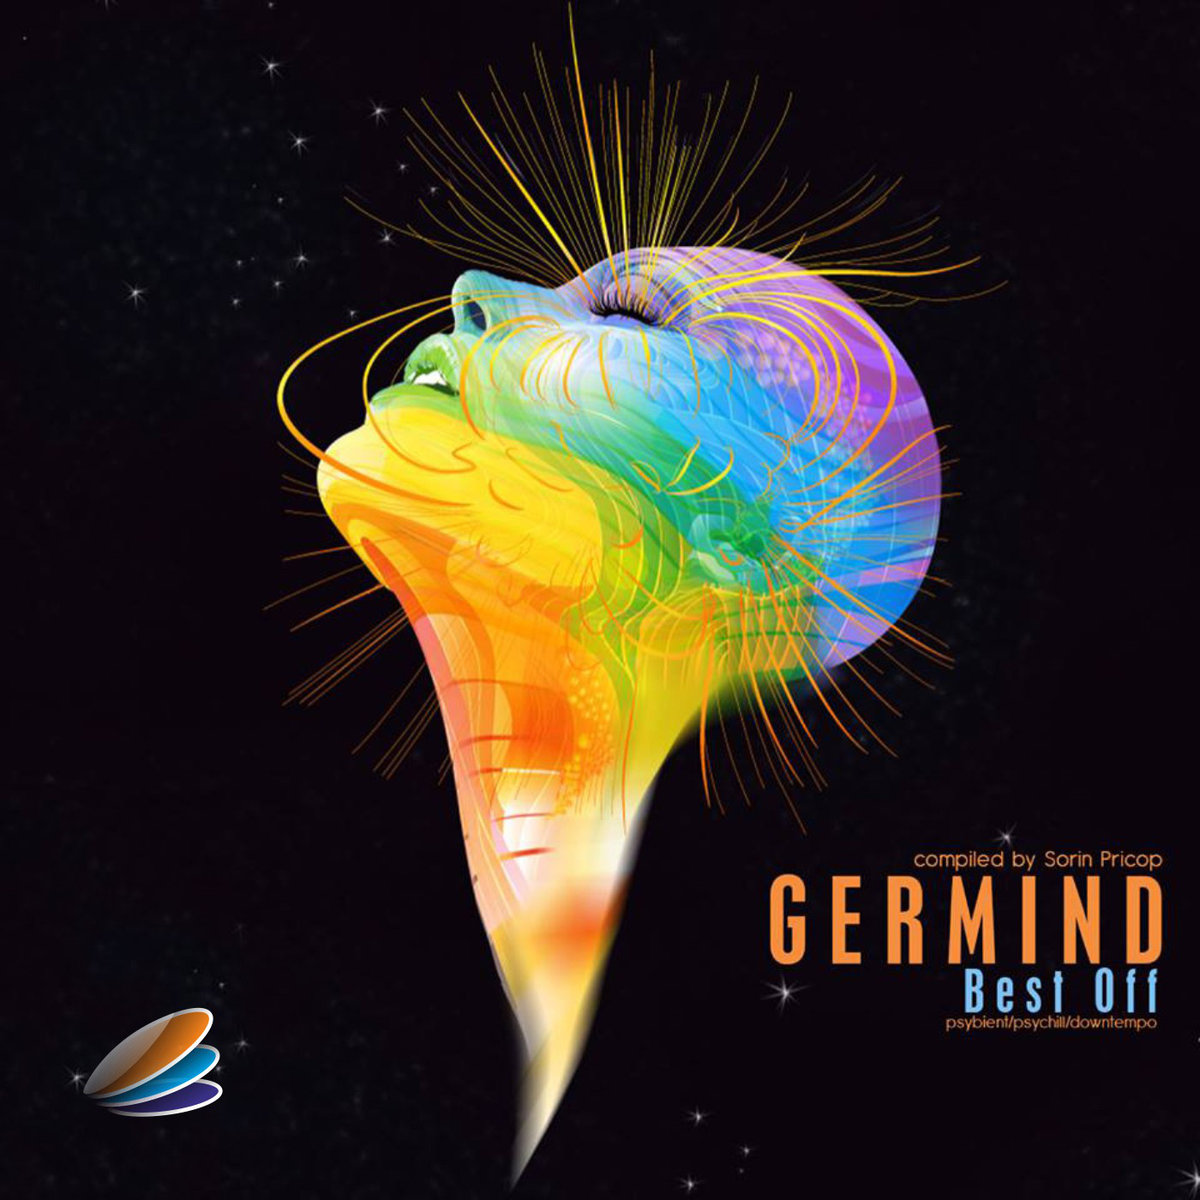 Germind - Best Off